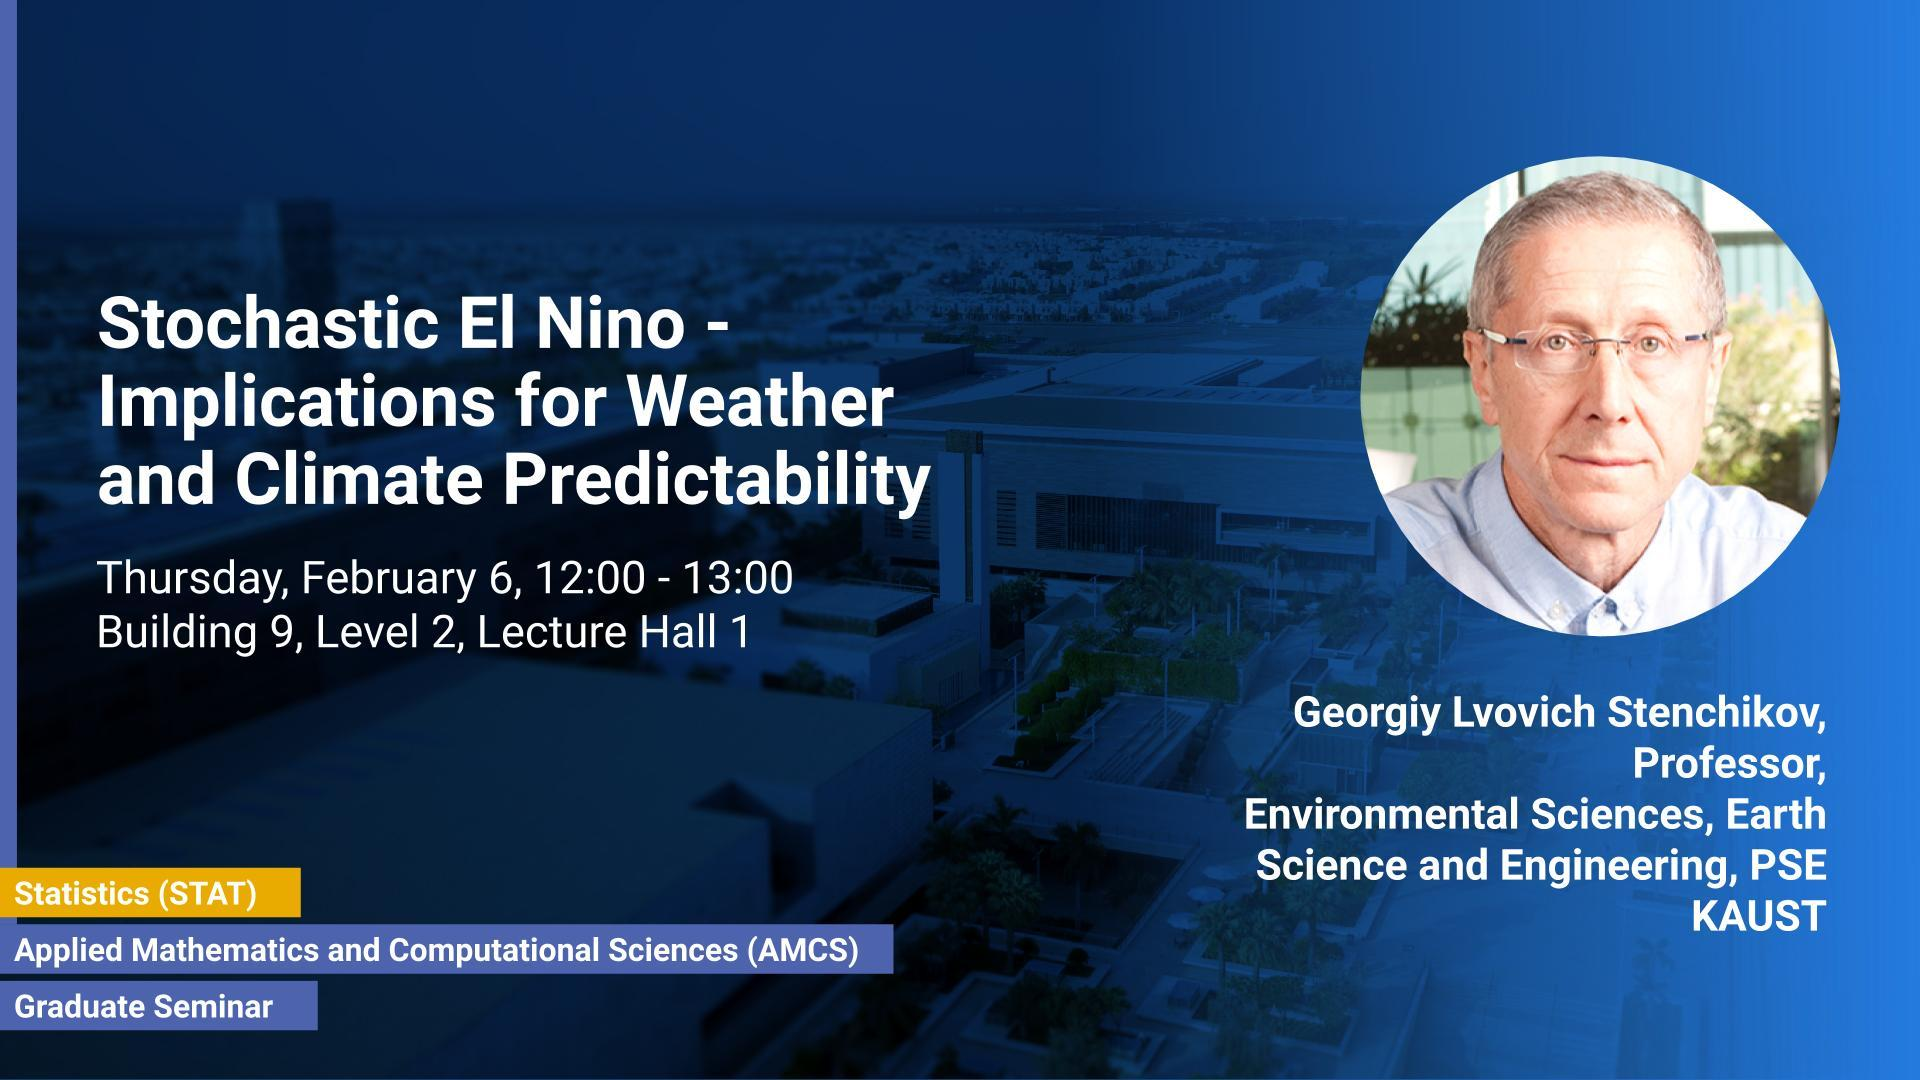 KAUST CEMSE AMCS STAT Graduate Seminar Georgiy Lvovich Stenchikov Implications for Weather and Climate Predictability